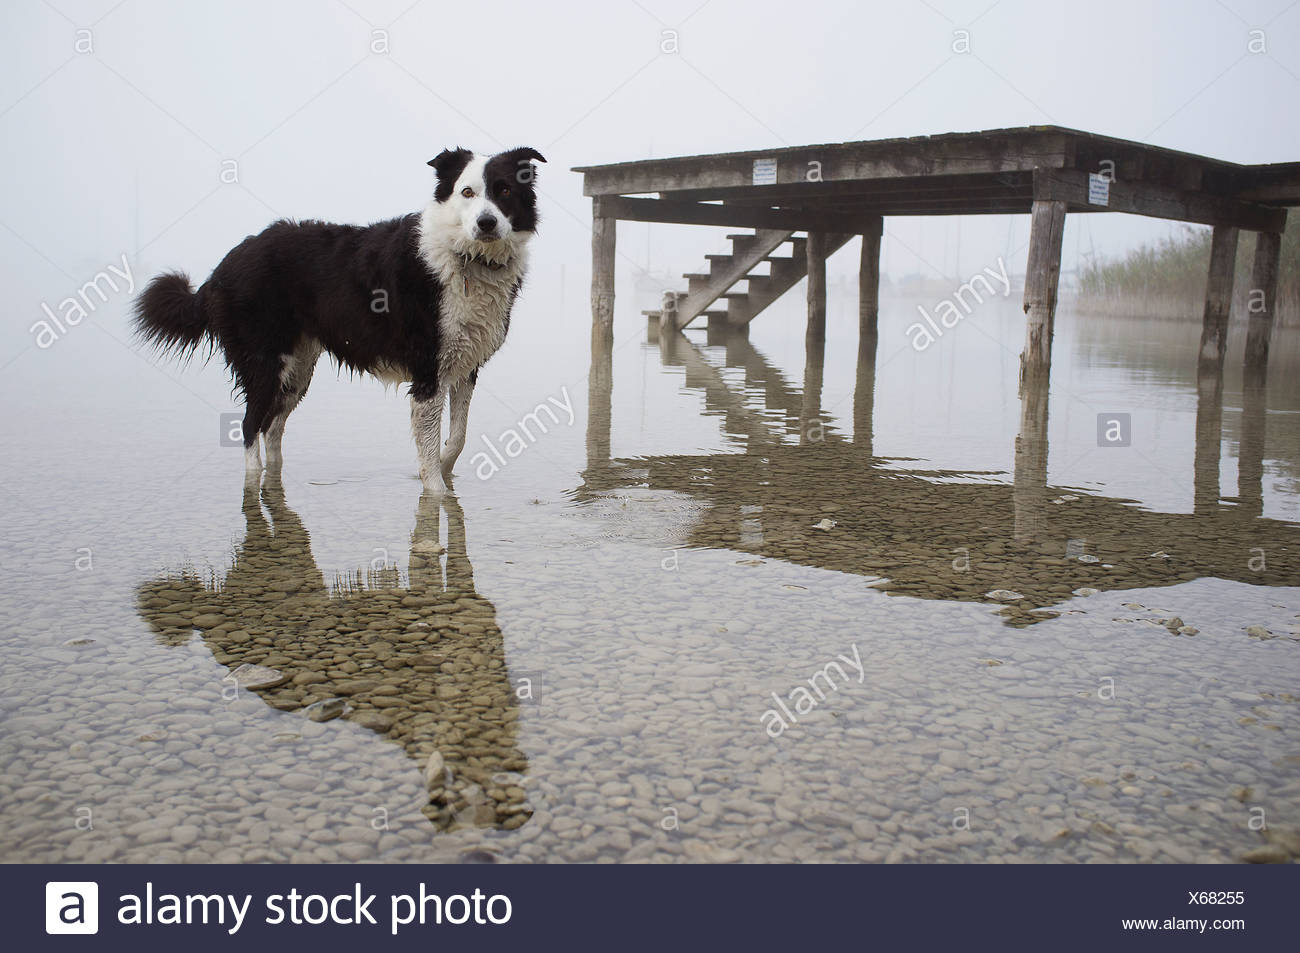 Dog wading in still lake - Stock Image